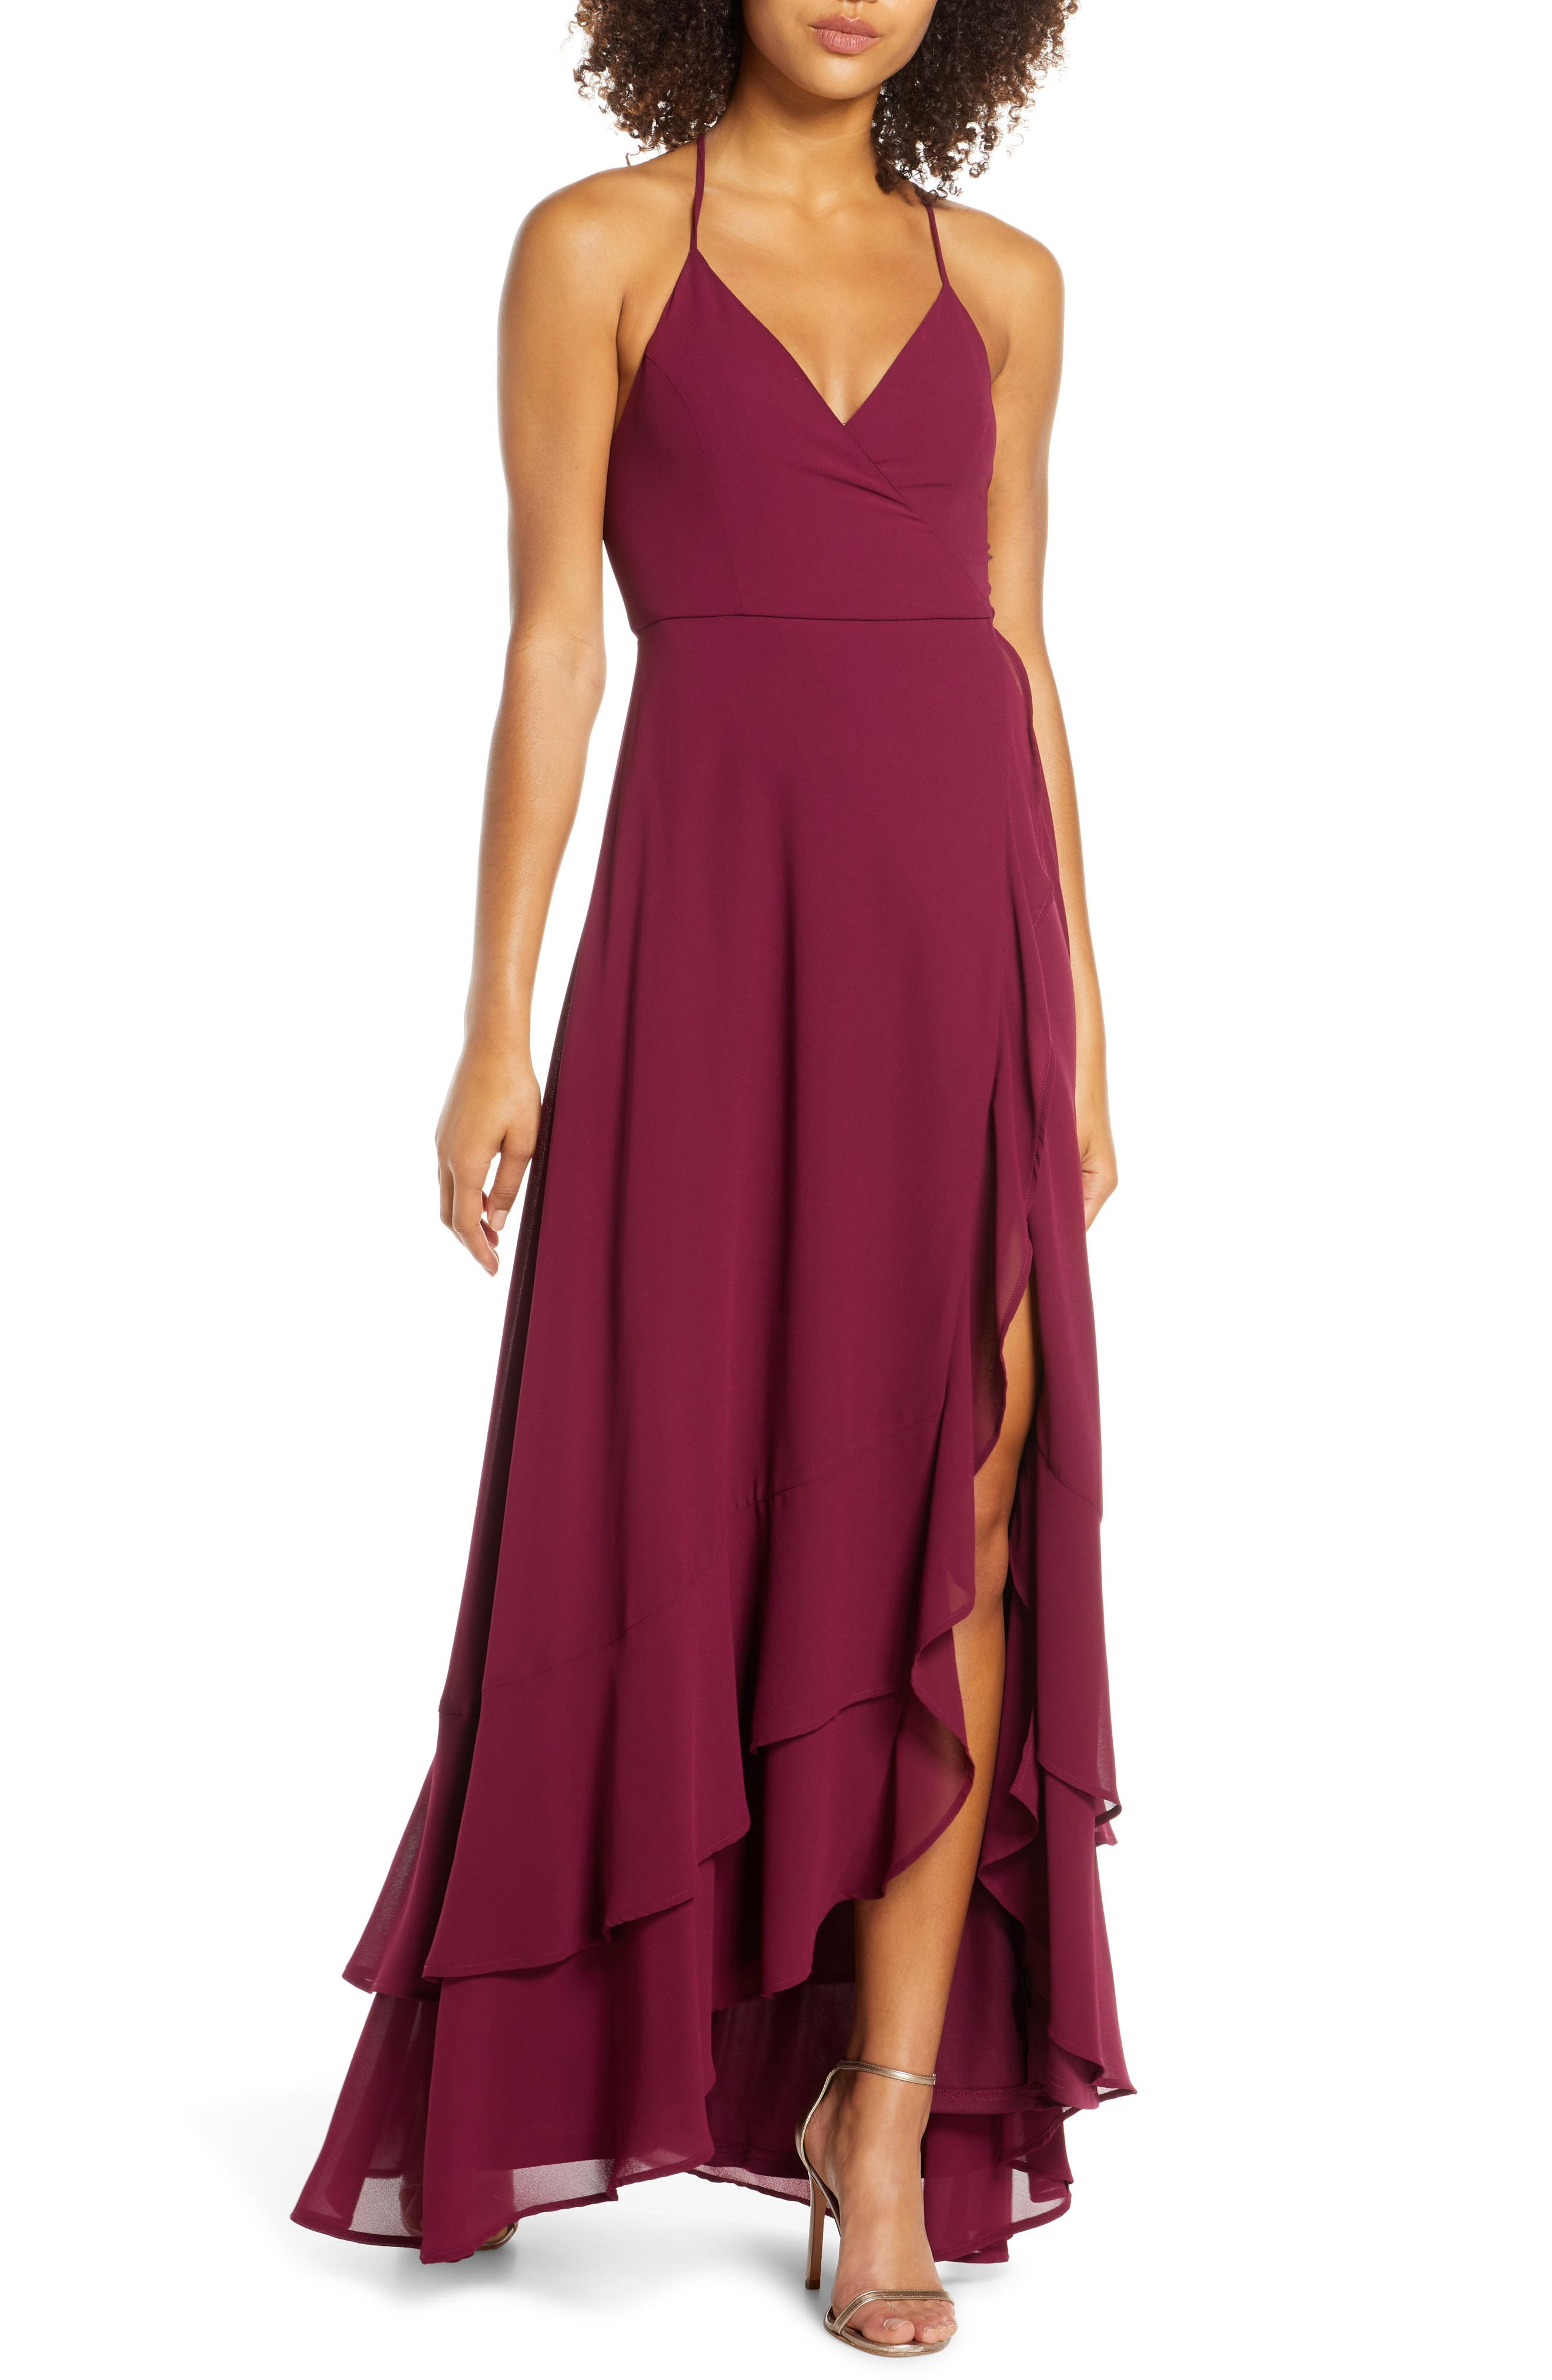 Lulus In Love Forever Lace-Up Back Chiffon Gown, Burgundy